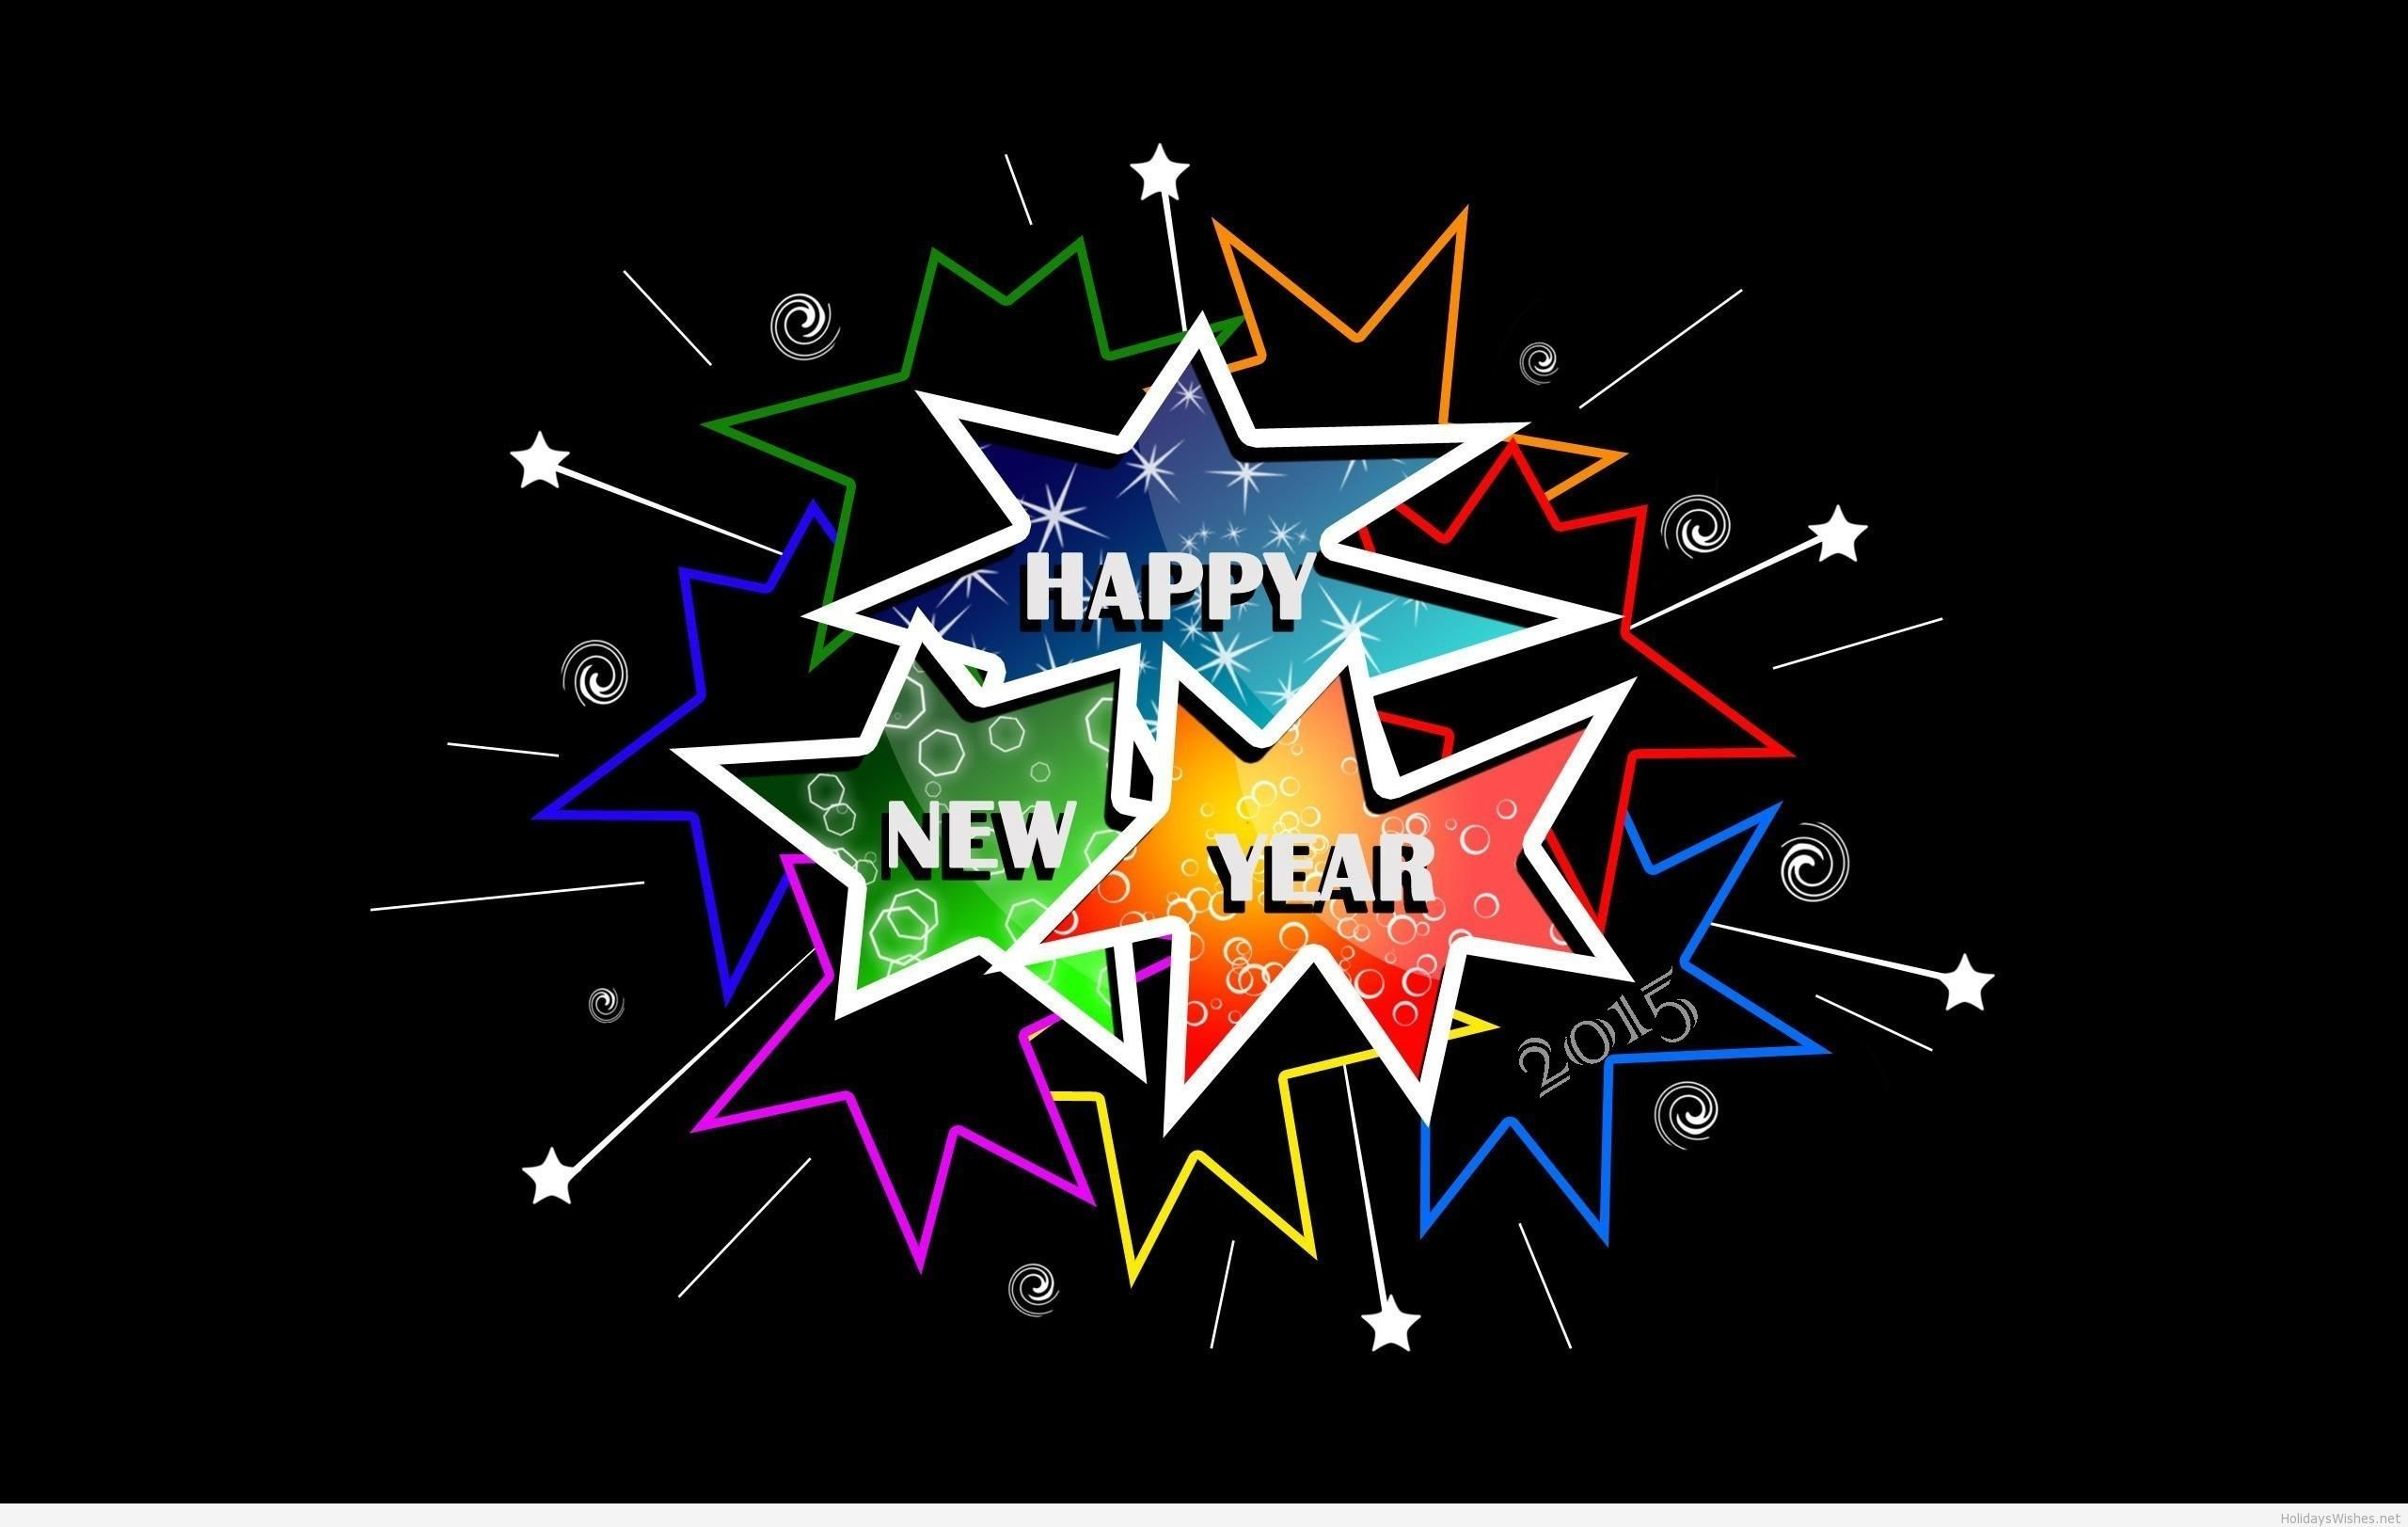 Happy new years pictures 2015 2015 happy new year thoughts happy new years pictures 2015 2015 happy new year thoughts messages quotes kristyandbryce Choice Image